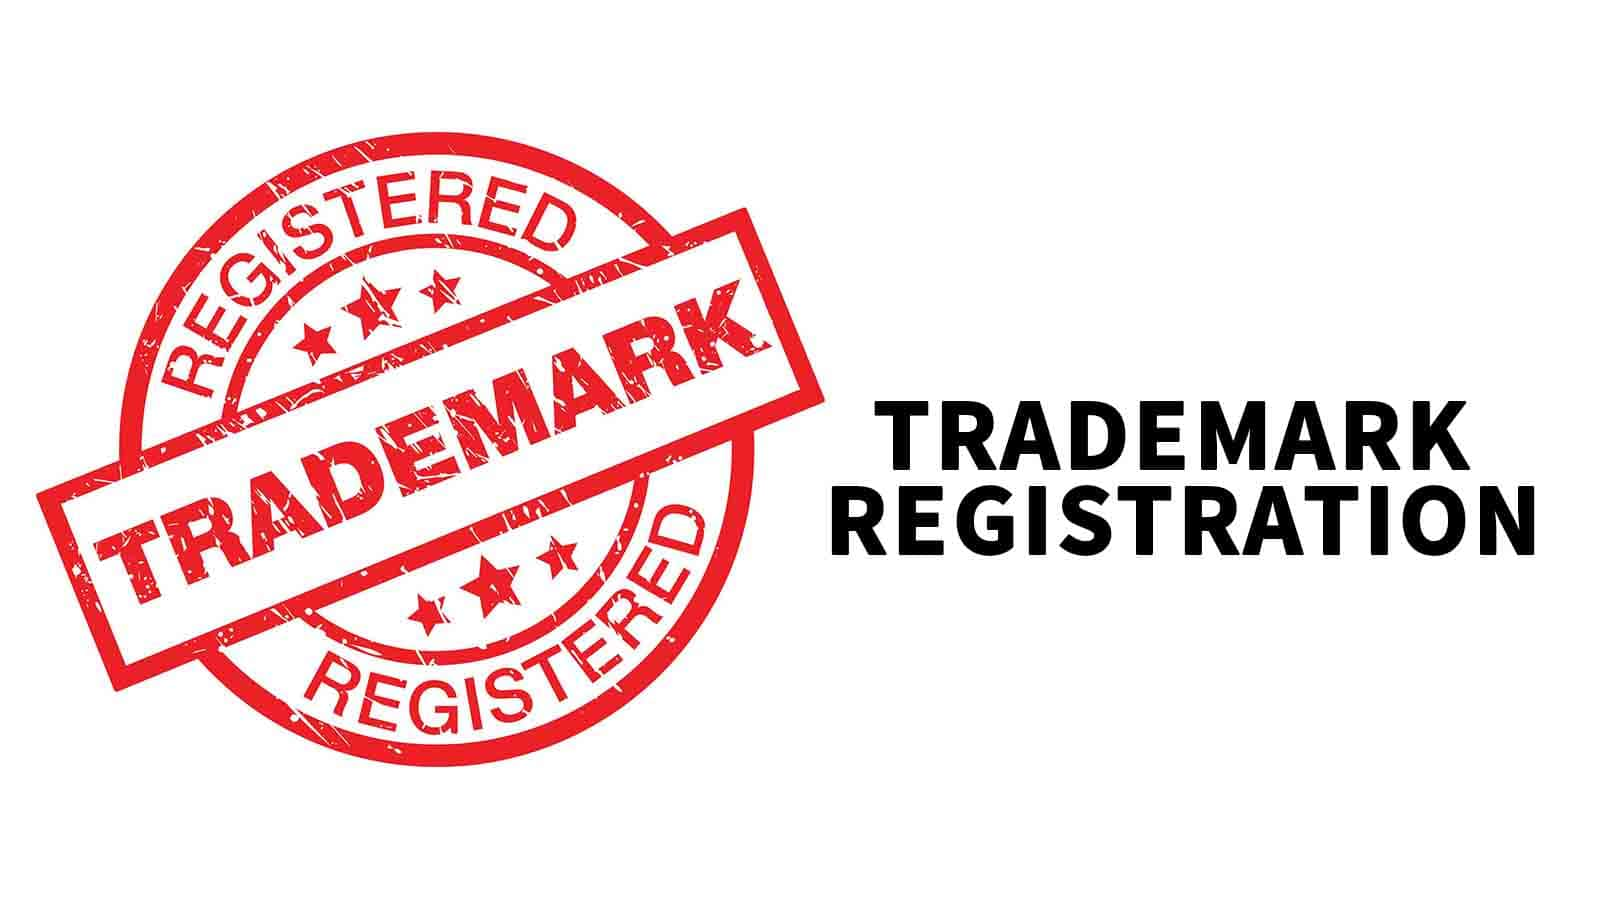 What Trademarks are registrable in India?